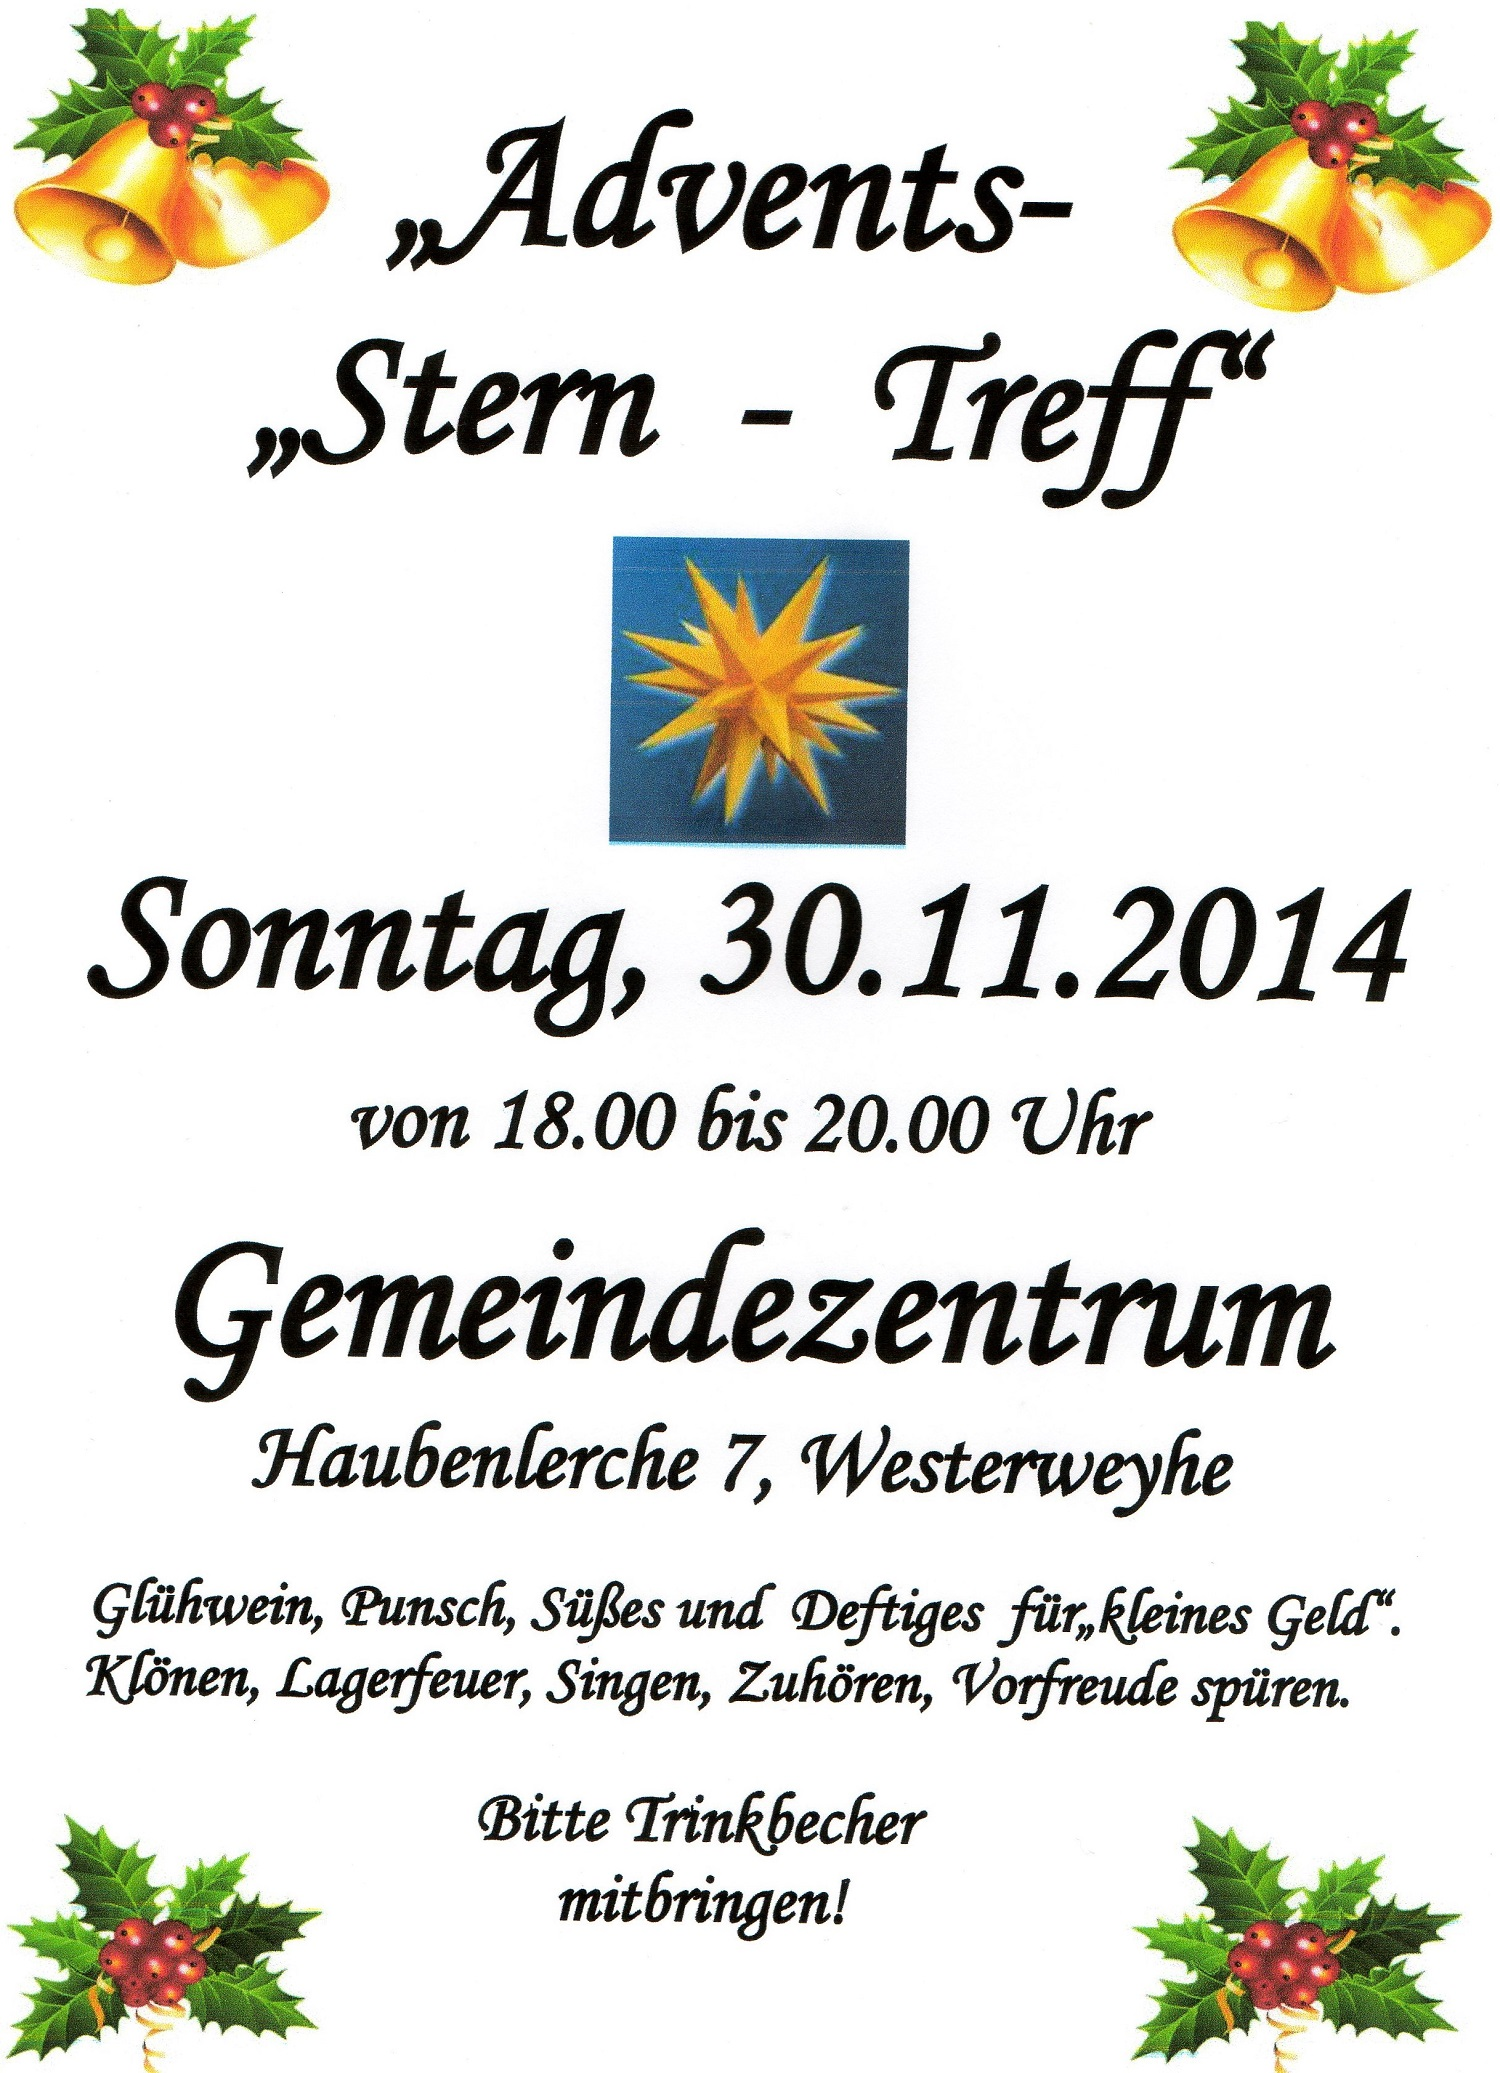 advents-stern-treff_30.11.14.jpg